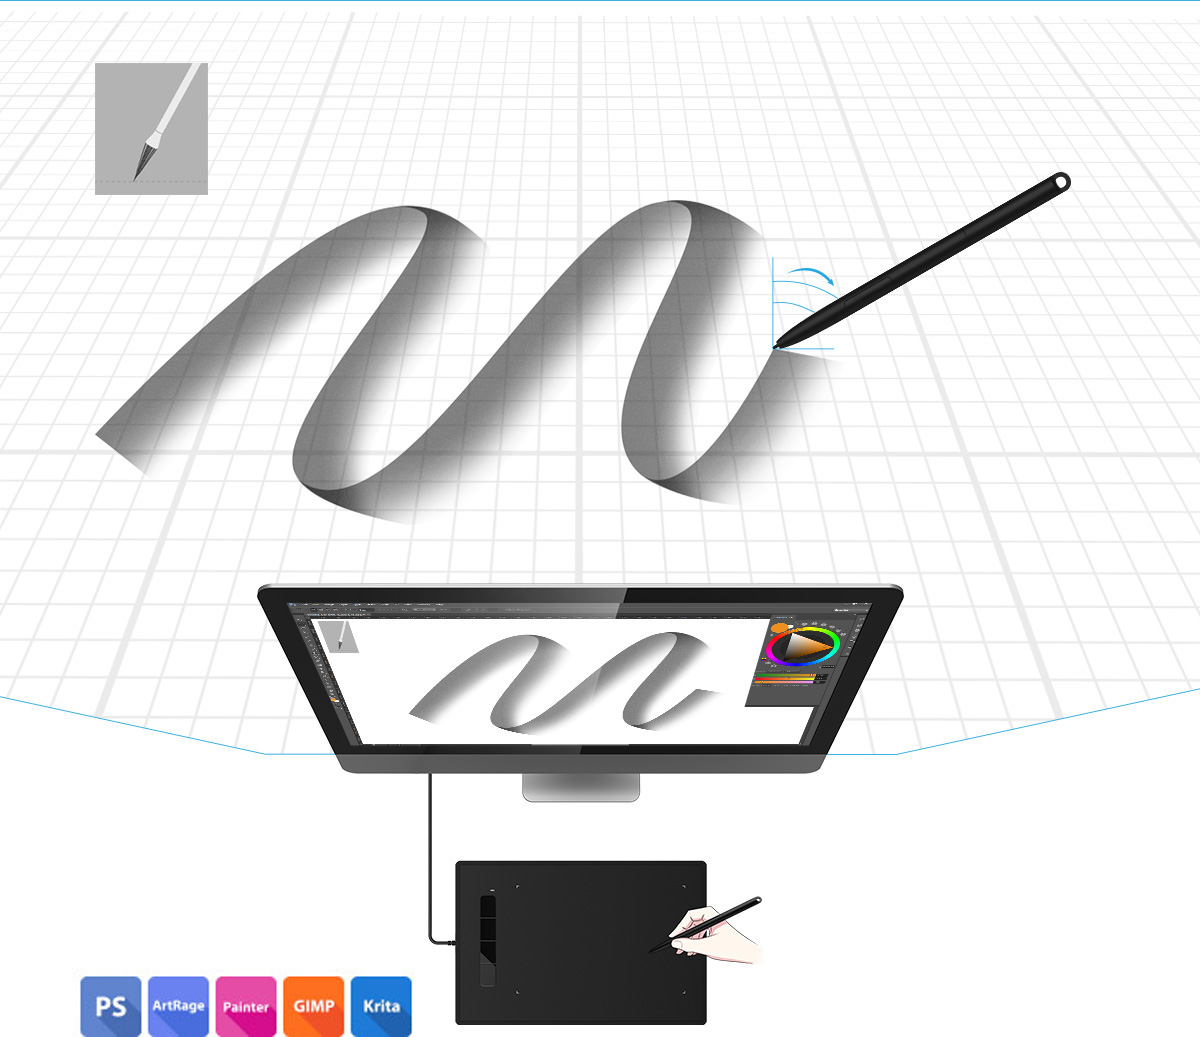 XP-Pen PH3 stylus supports tilt function